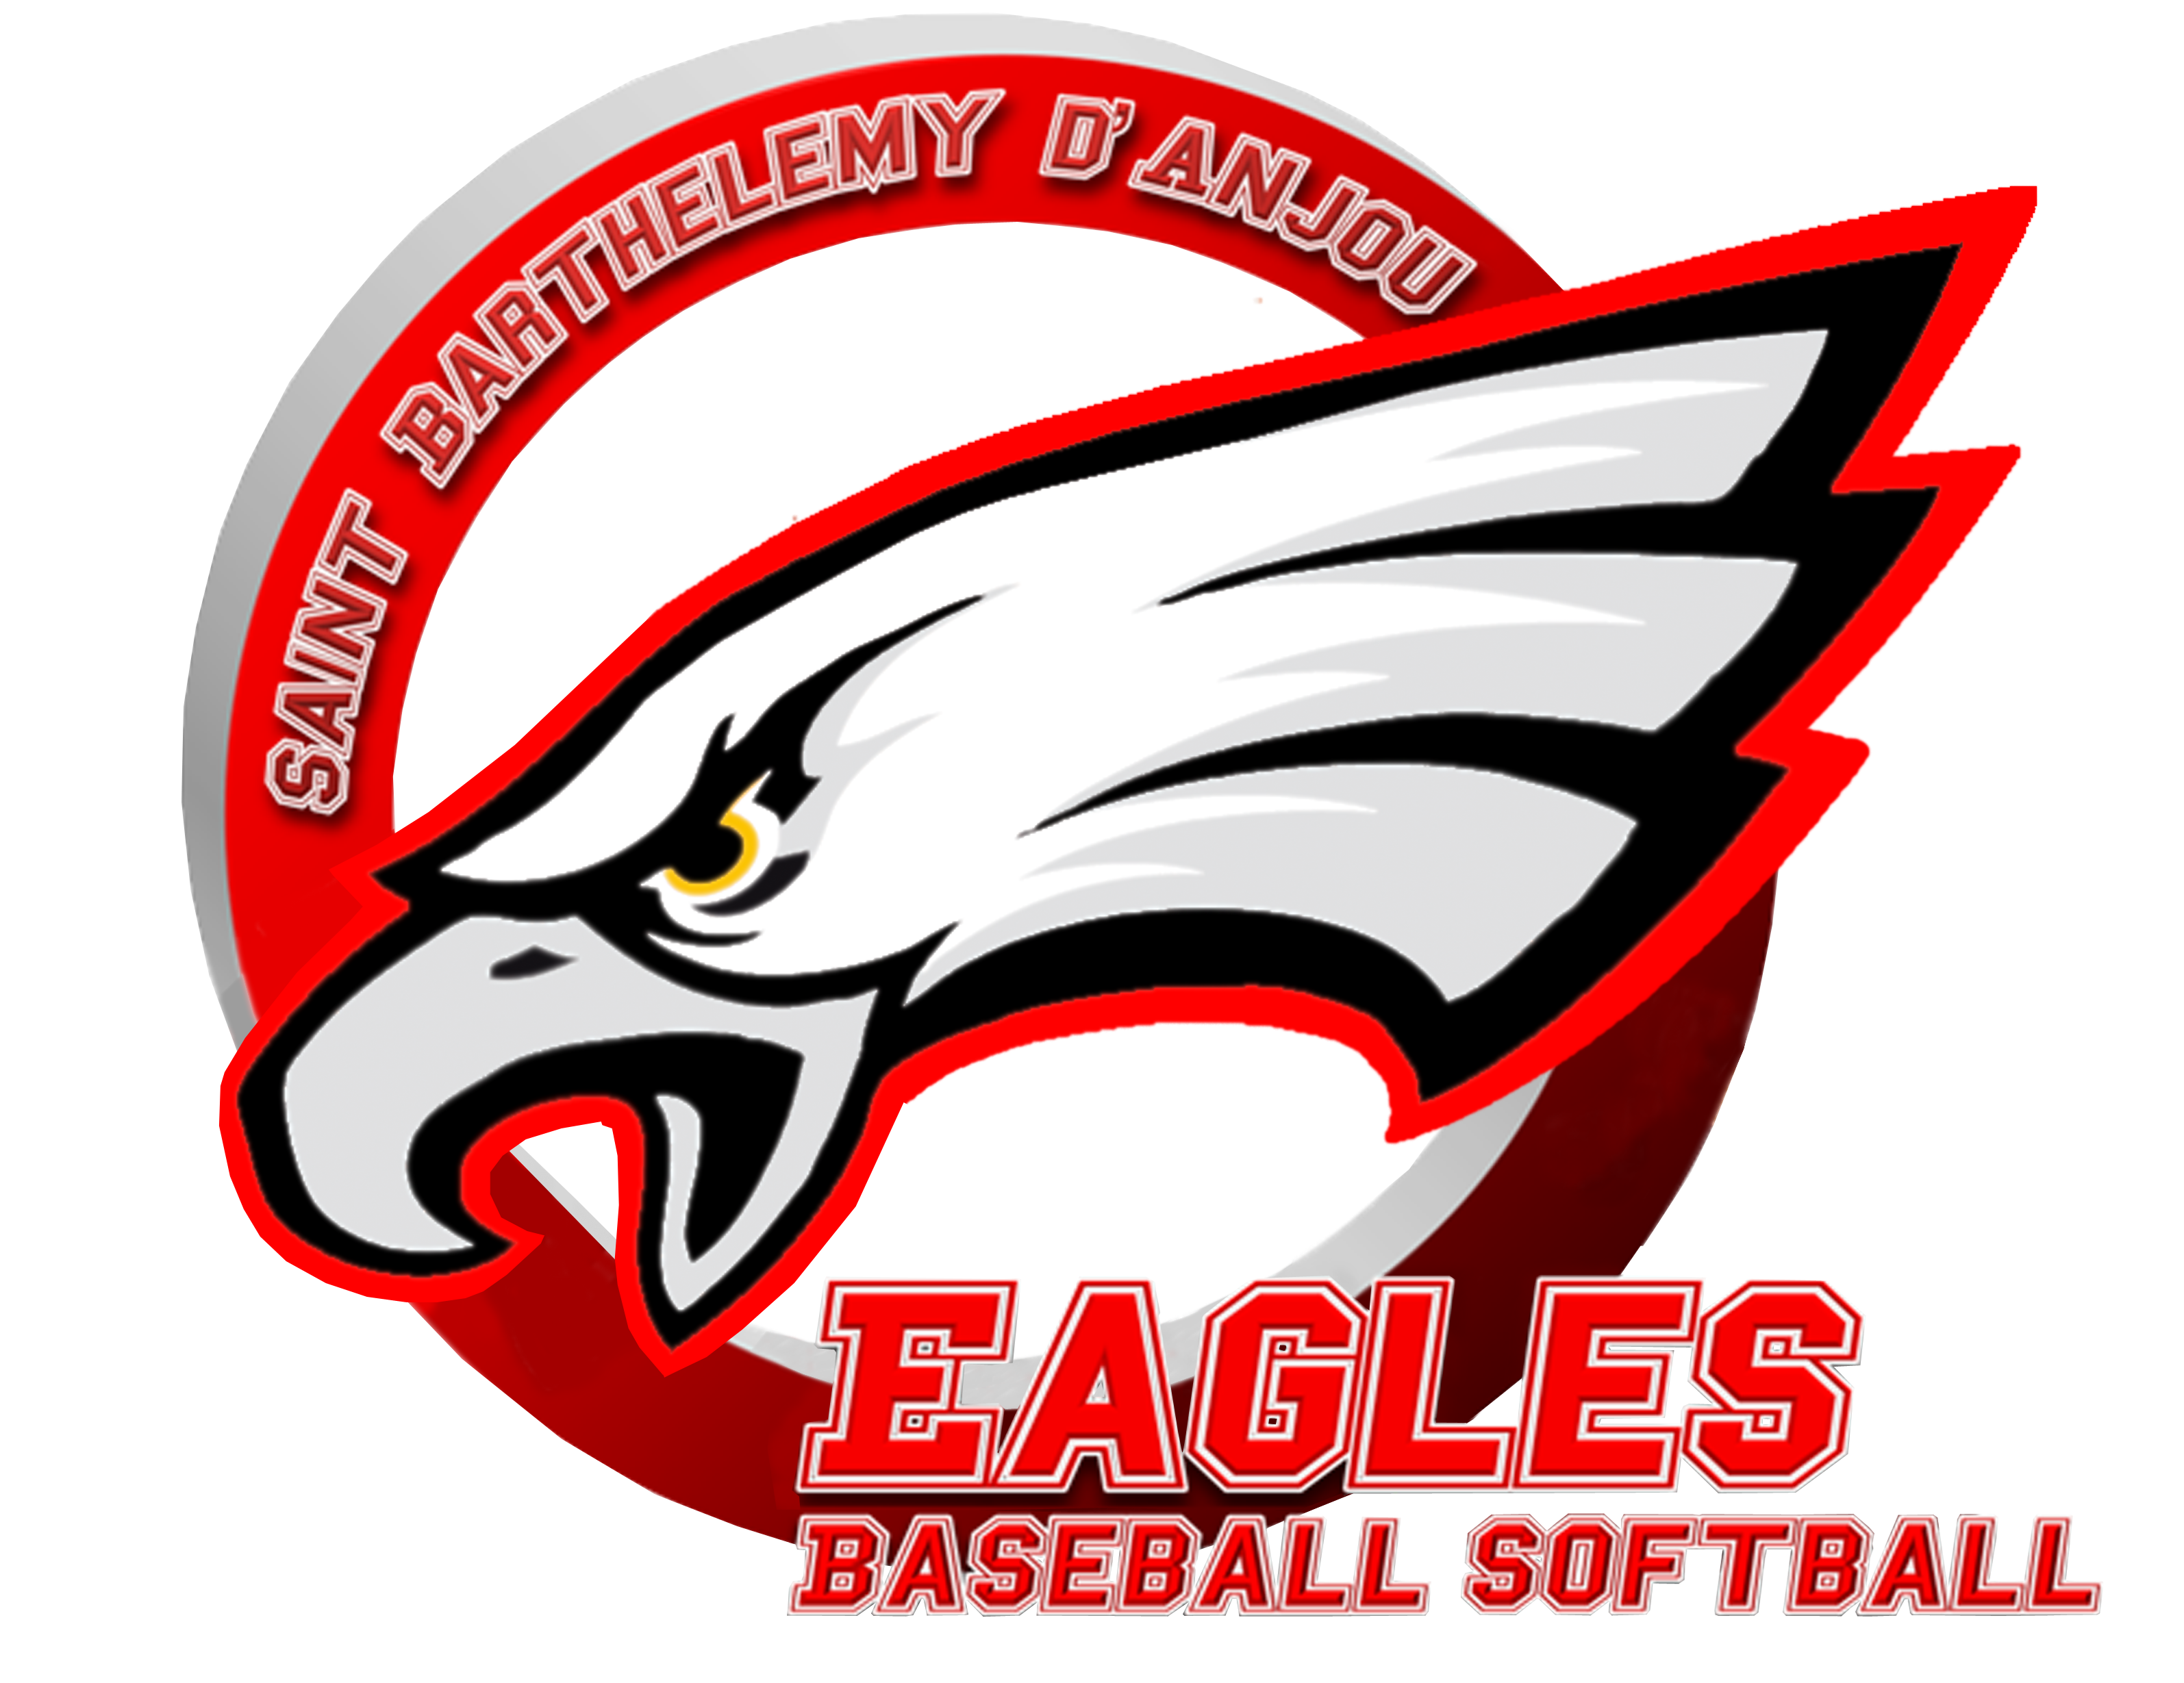 Eagles Baseball Club